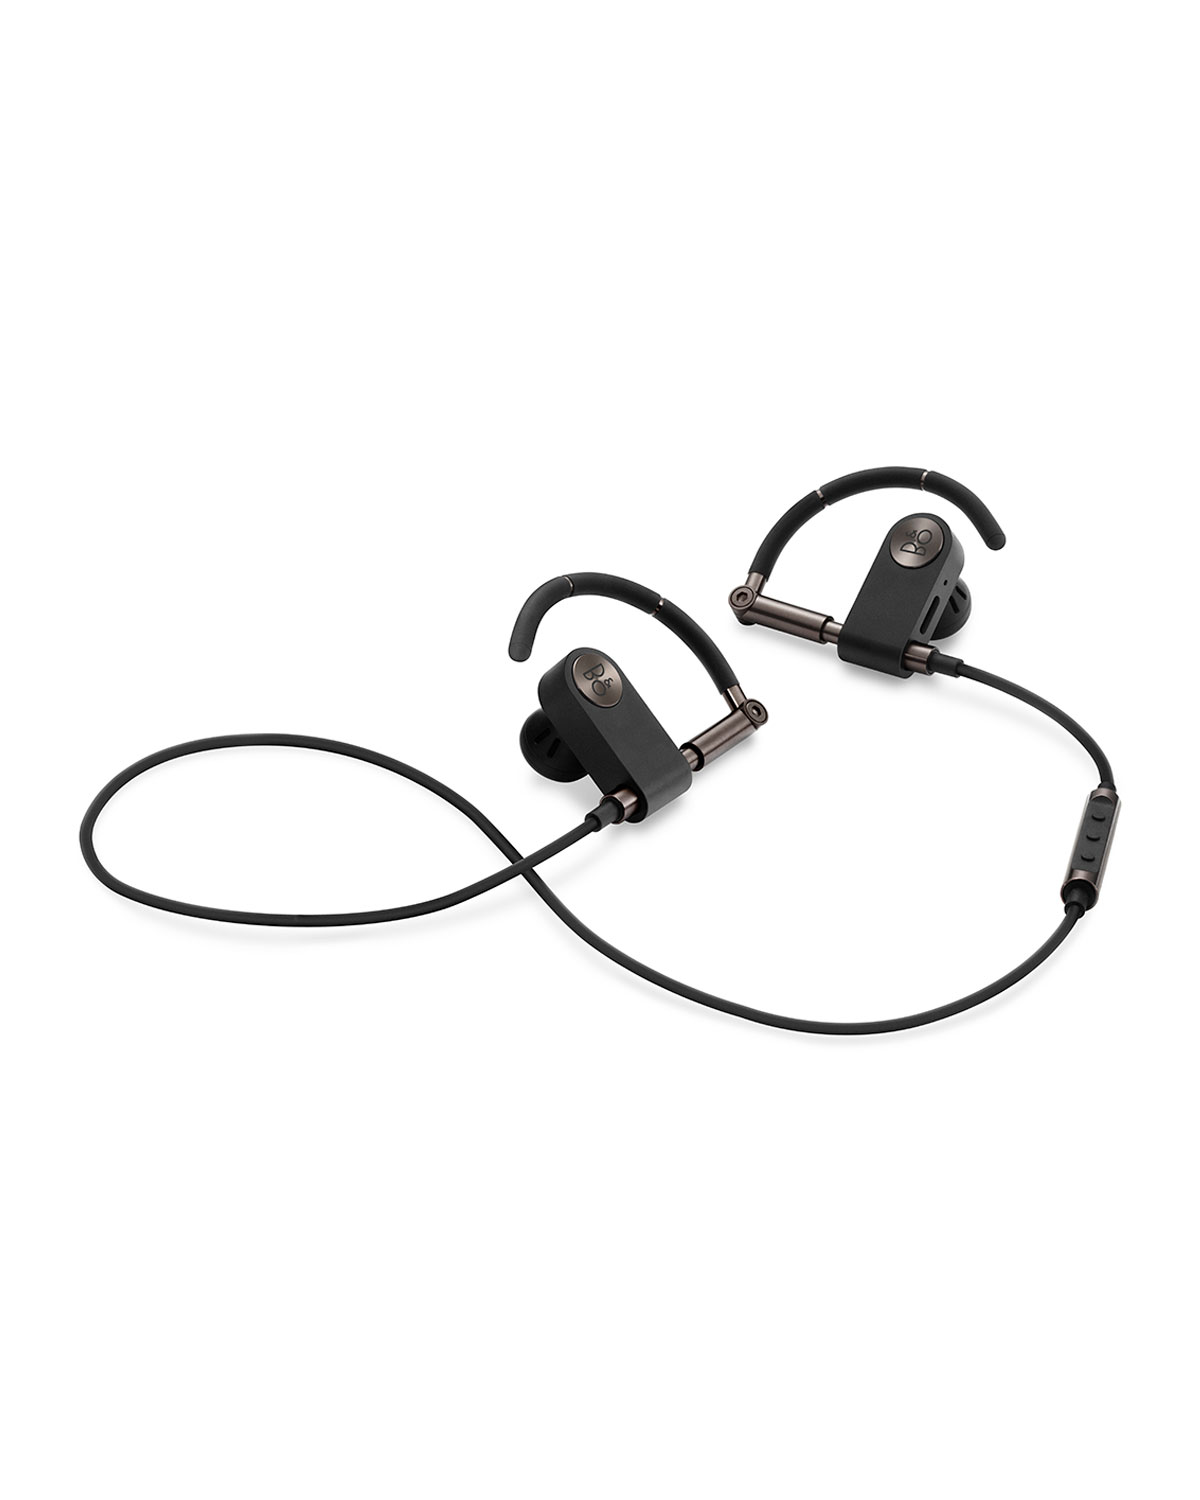 BANG & OLUFSEN Beoplay Wireless Earphones in Brown